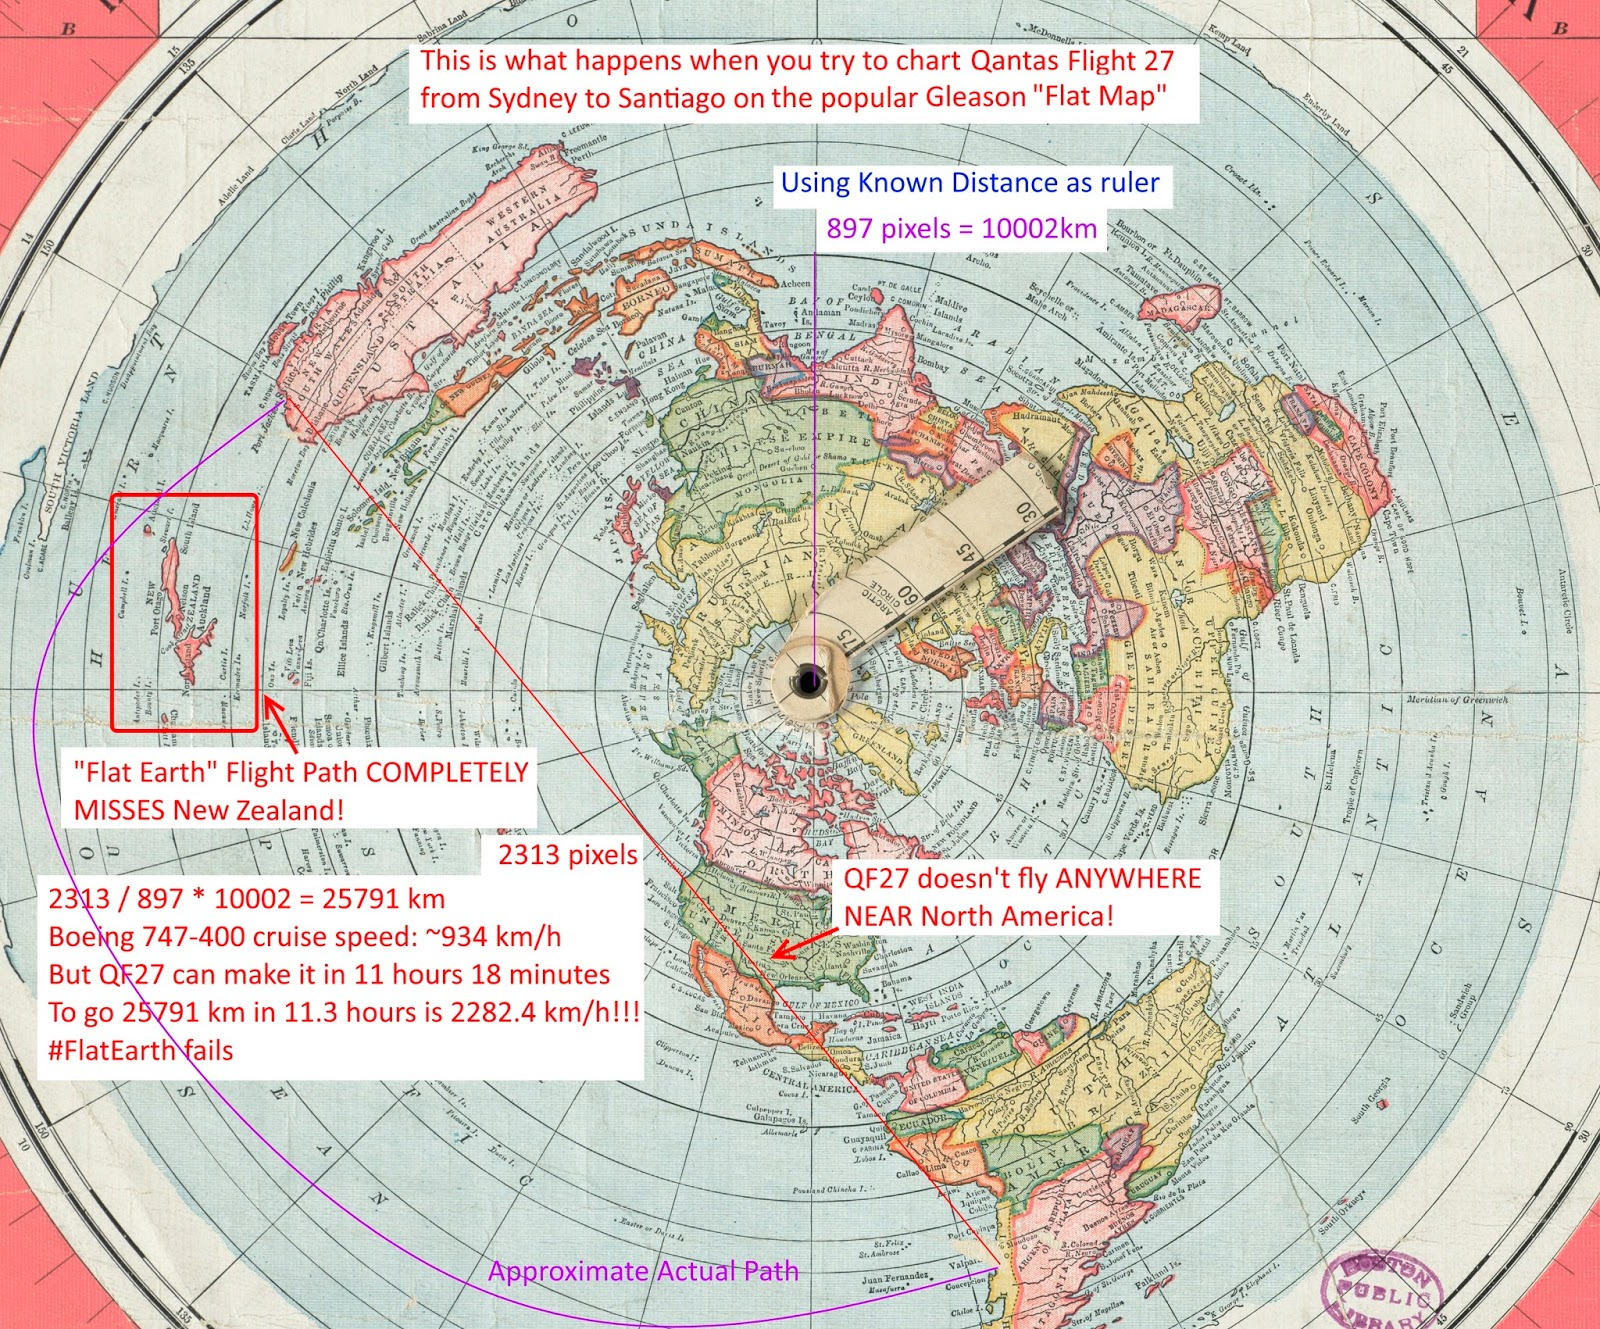 Flat Earth Insanity: Catalog of Flat Earth Claims & Refutations